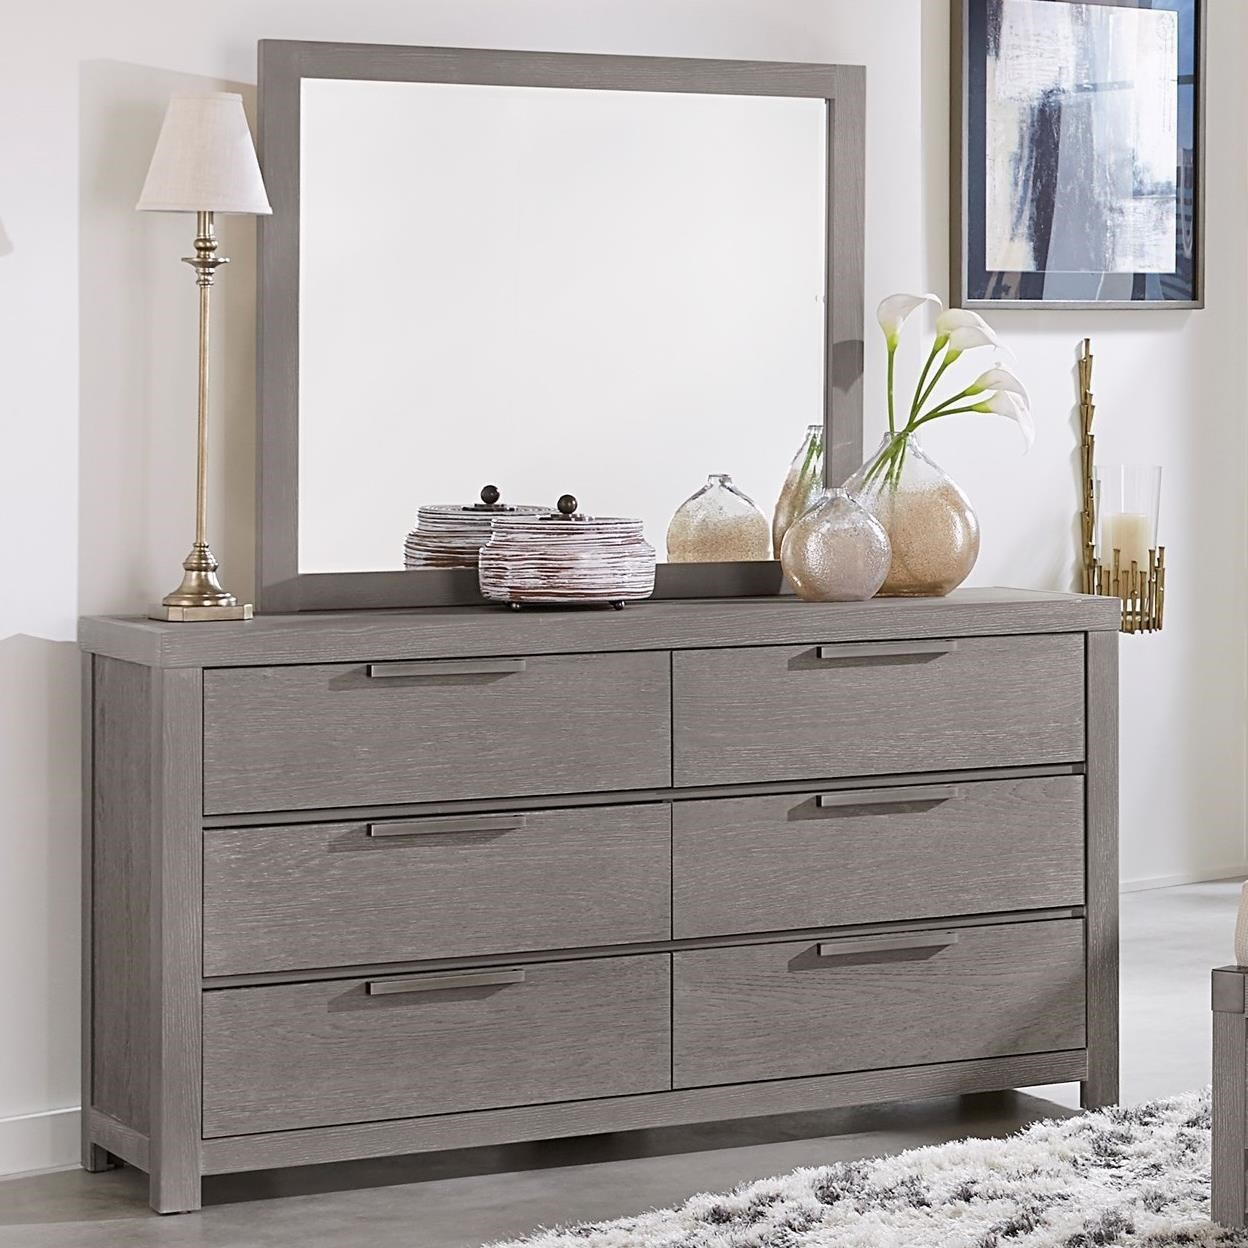 furniture dresser. vaughan bassett american moderndresser \u0026 landscape mirror furniture dresser